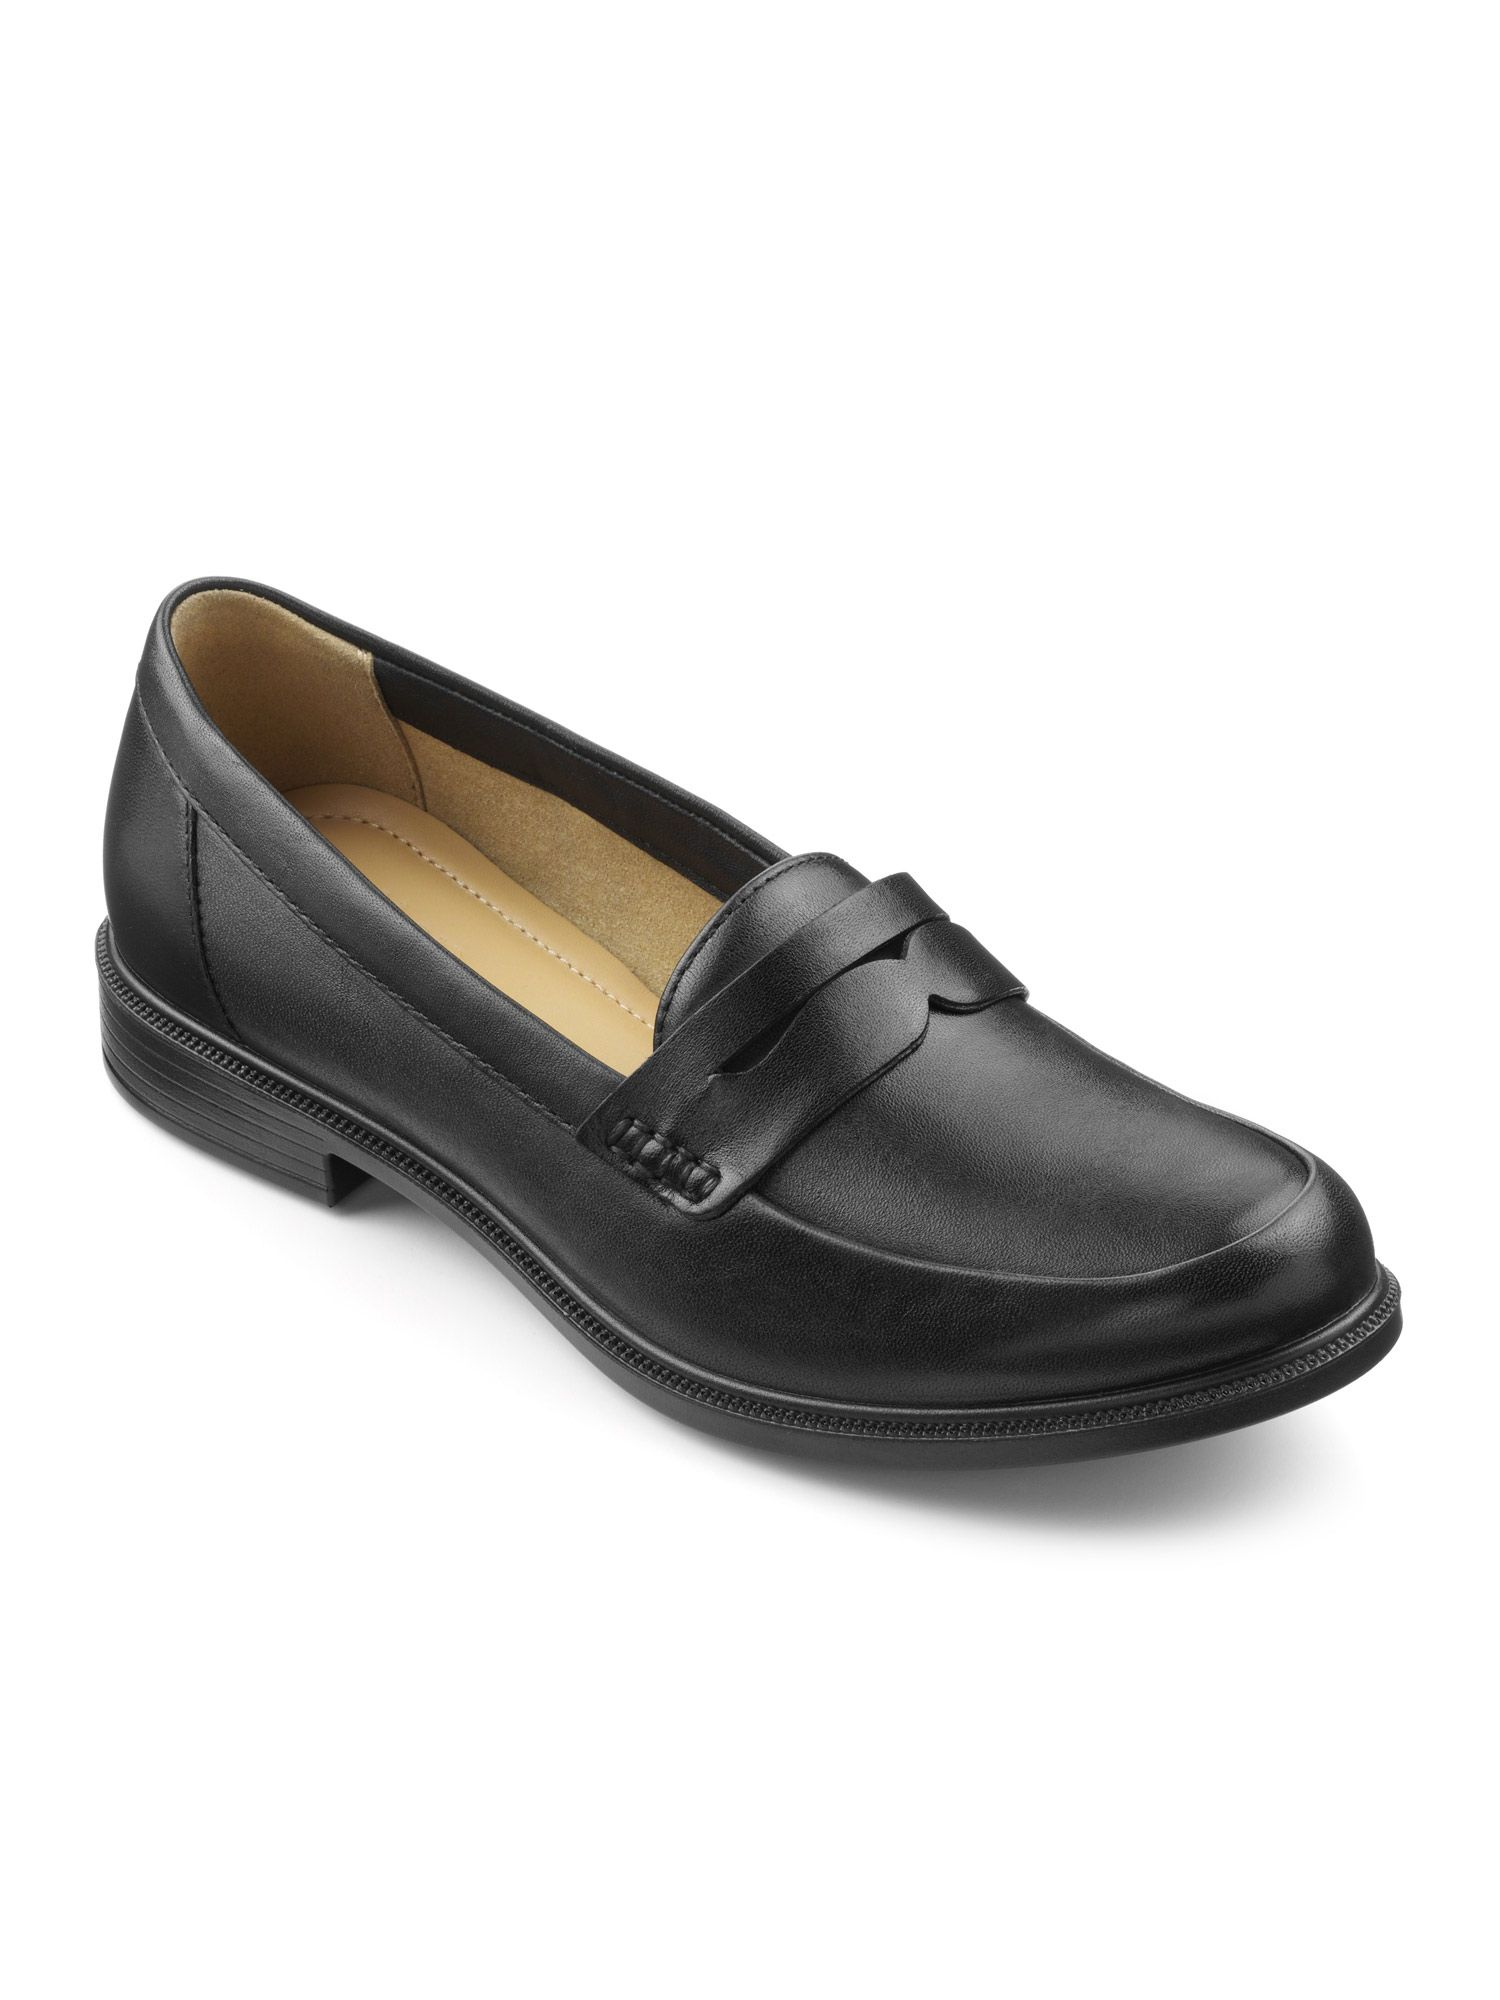 Hotter Dorset Smart Loafer Shoes, Black